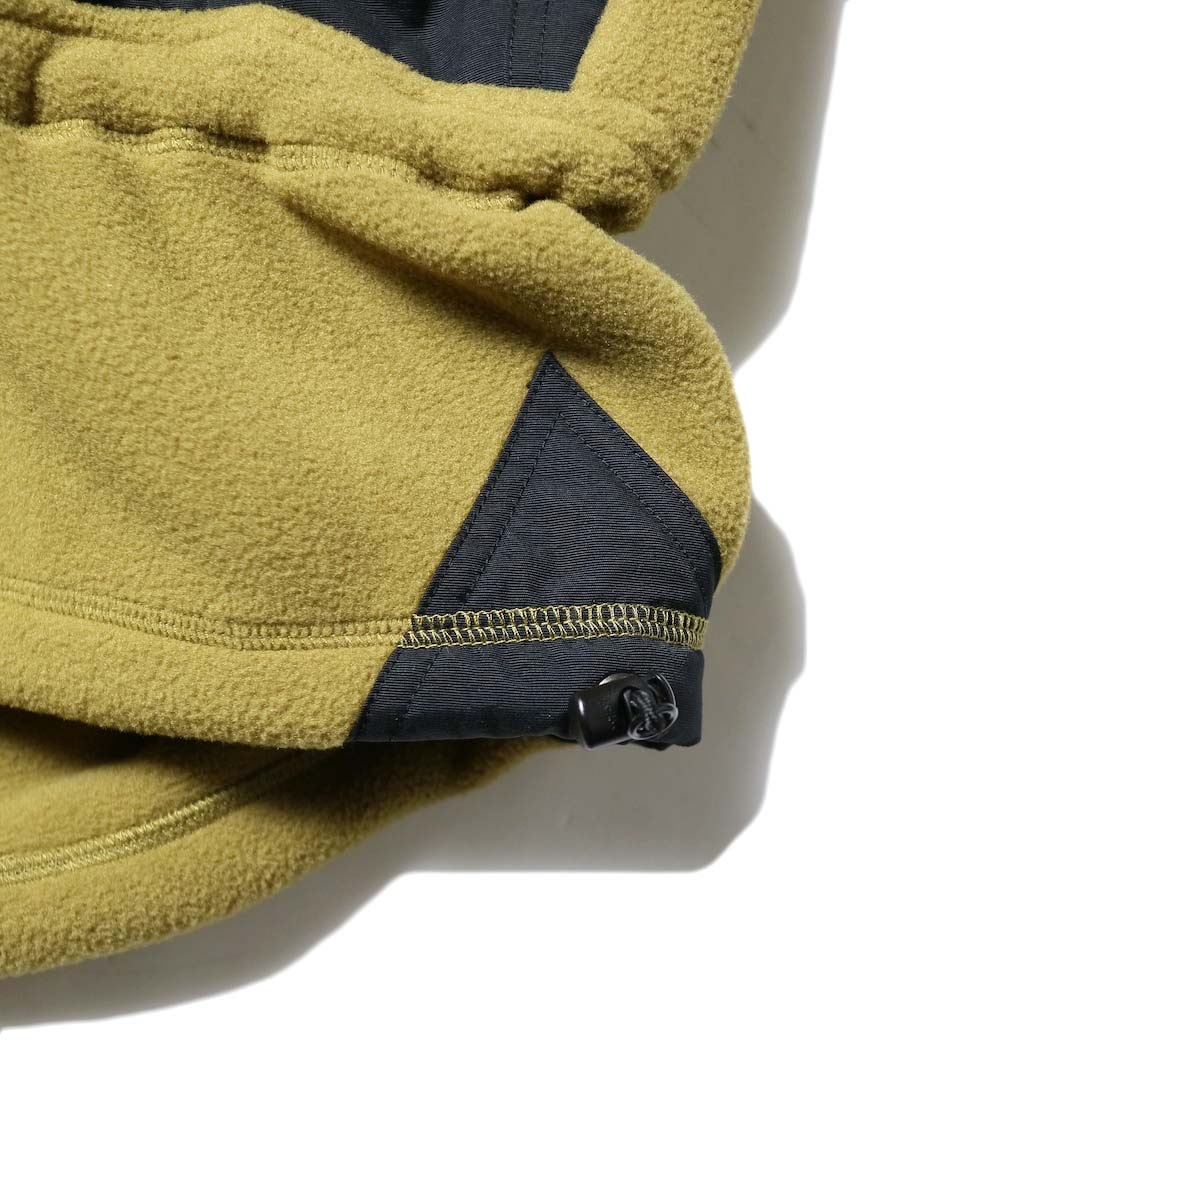 Marmot Histric Collection / Alpinist Tech Sweater (Coyote×Black)裾スピンドル